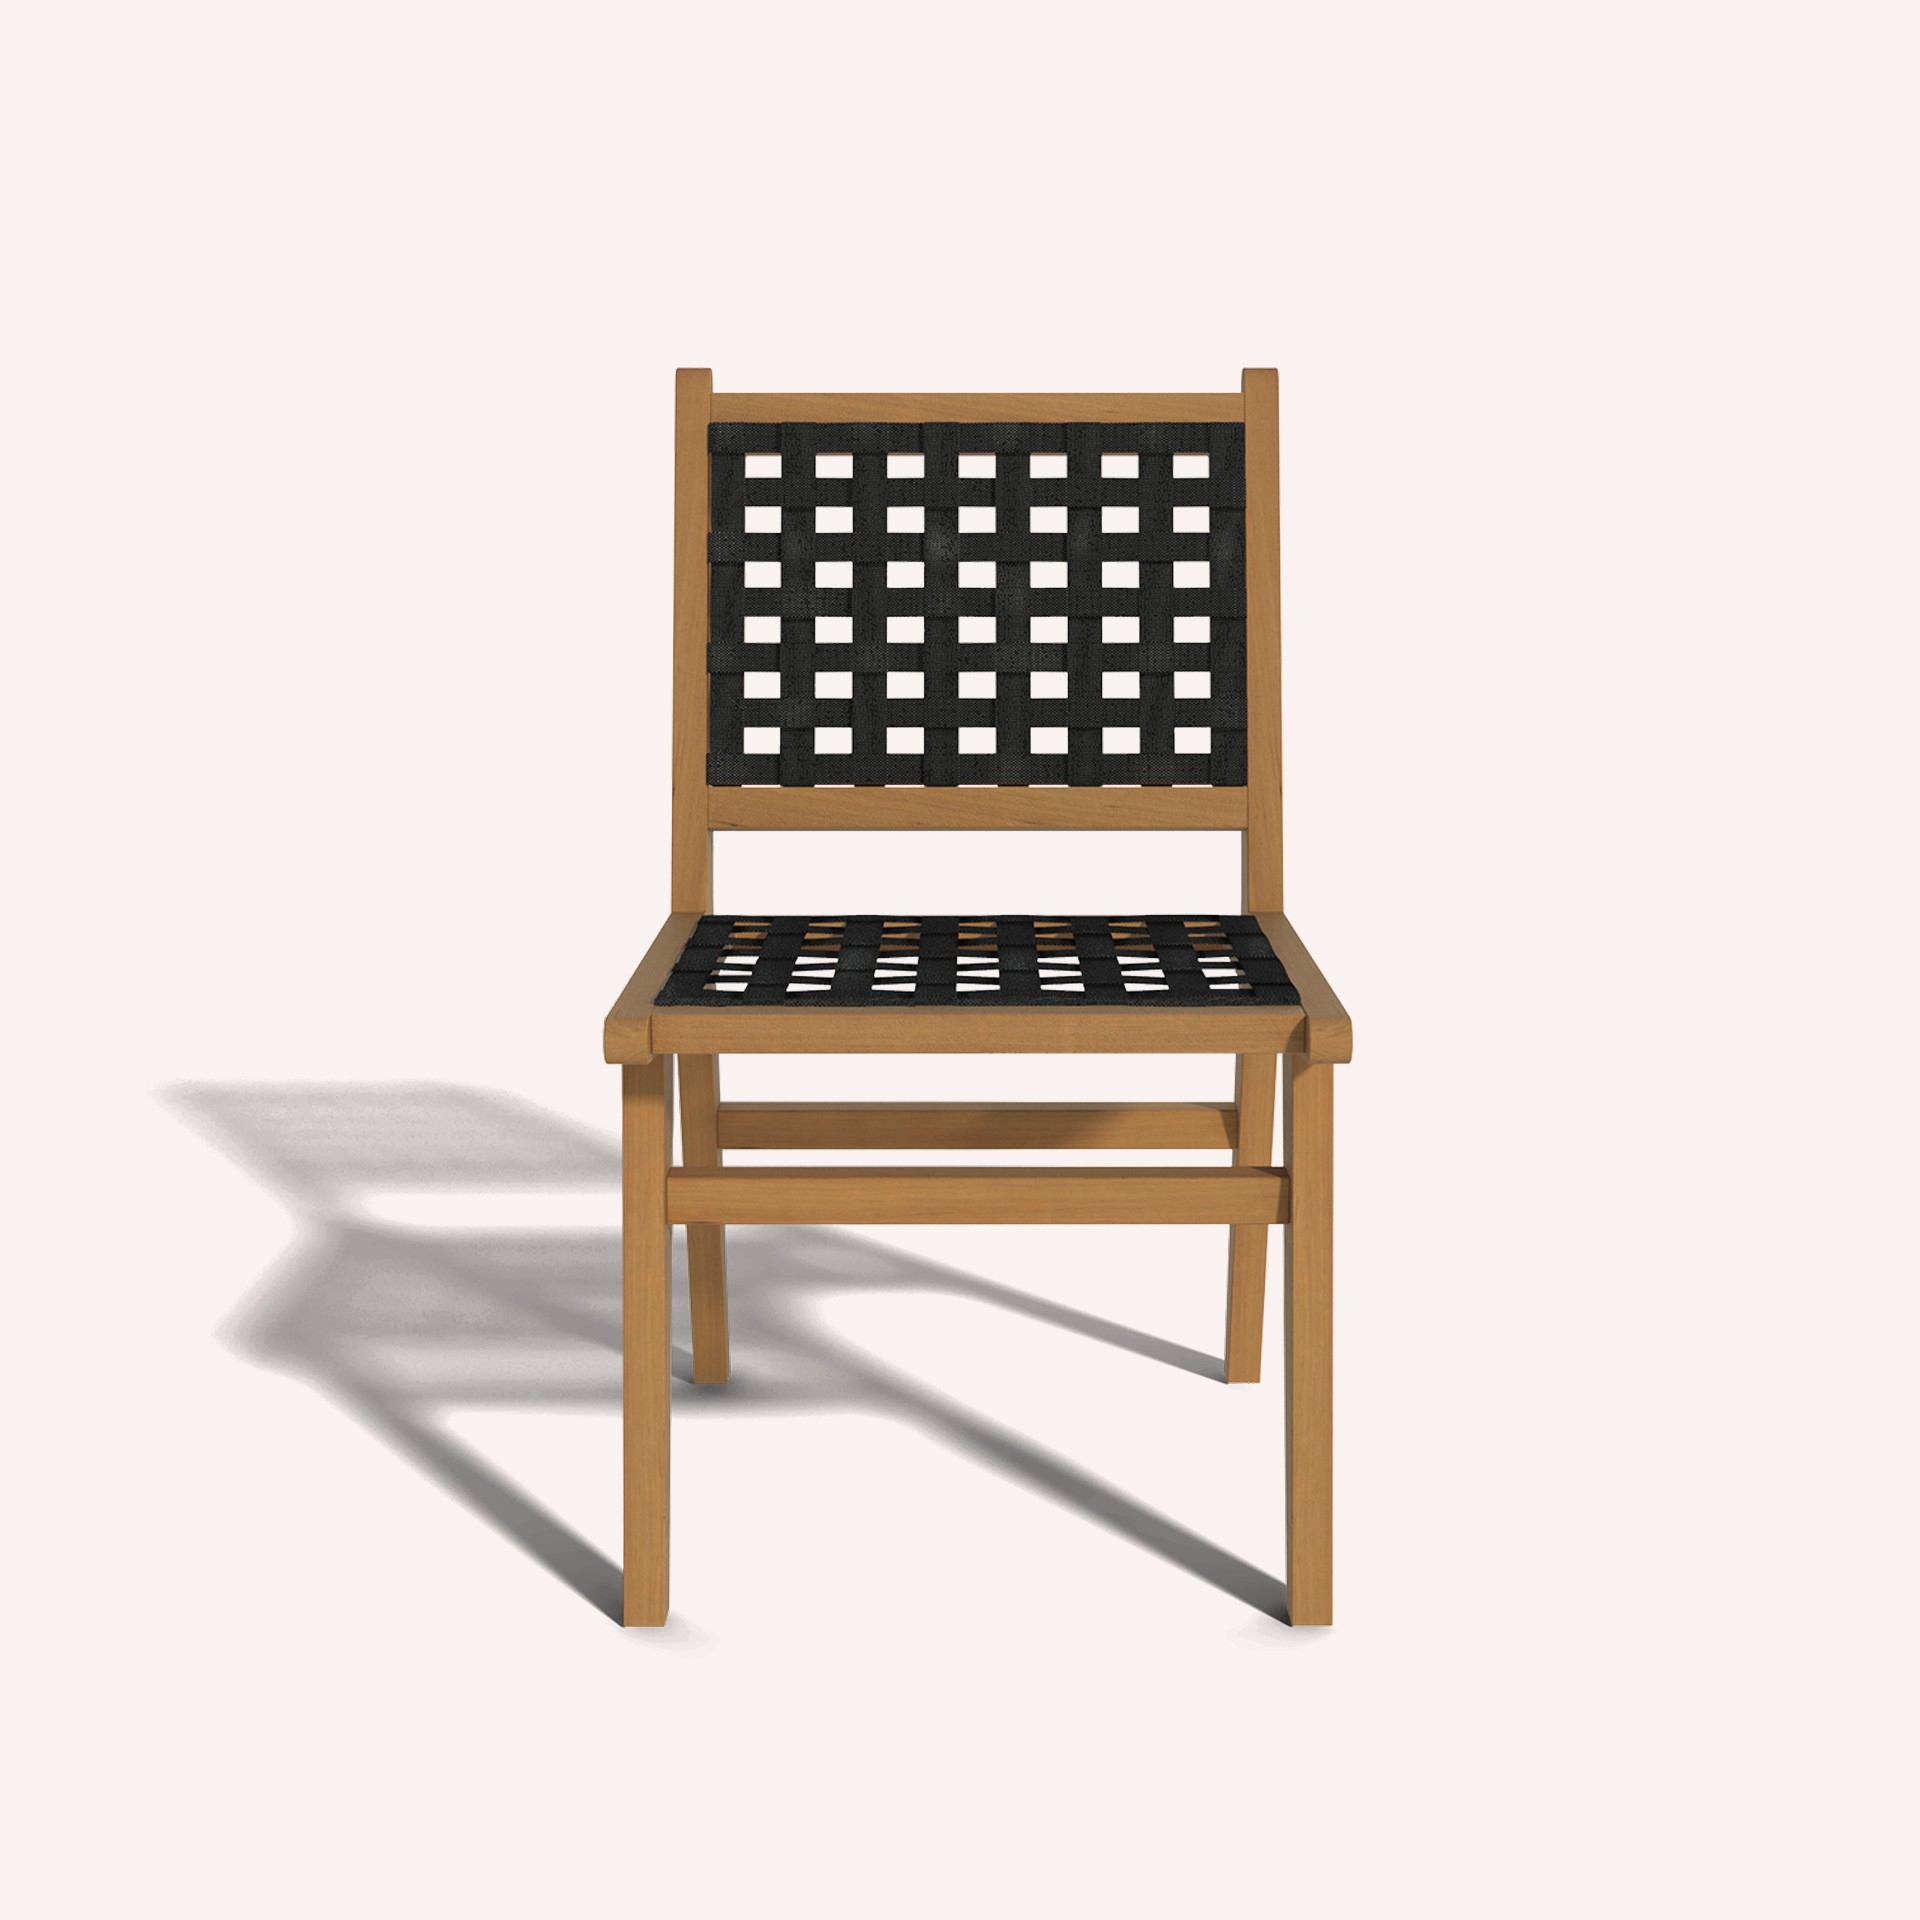 Wooden Dining Chair Ilios with fabric webbings